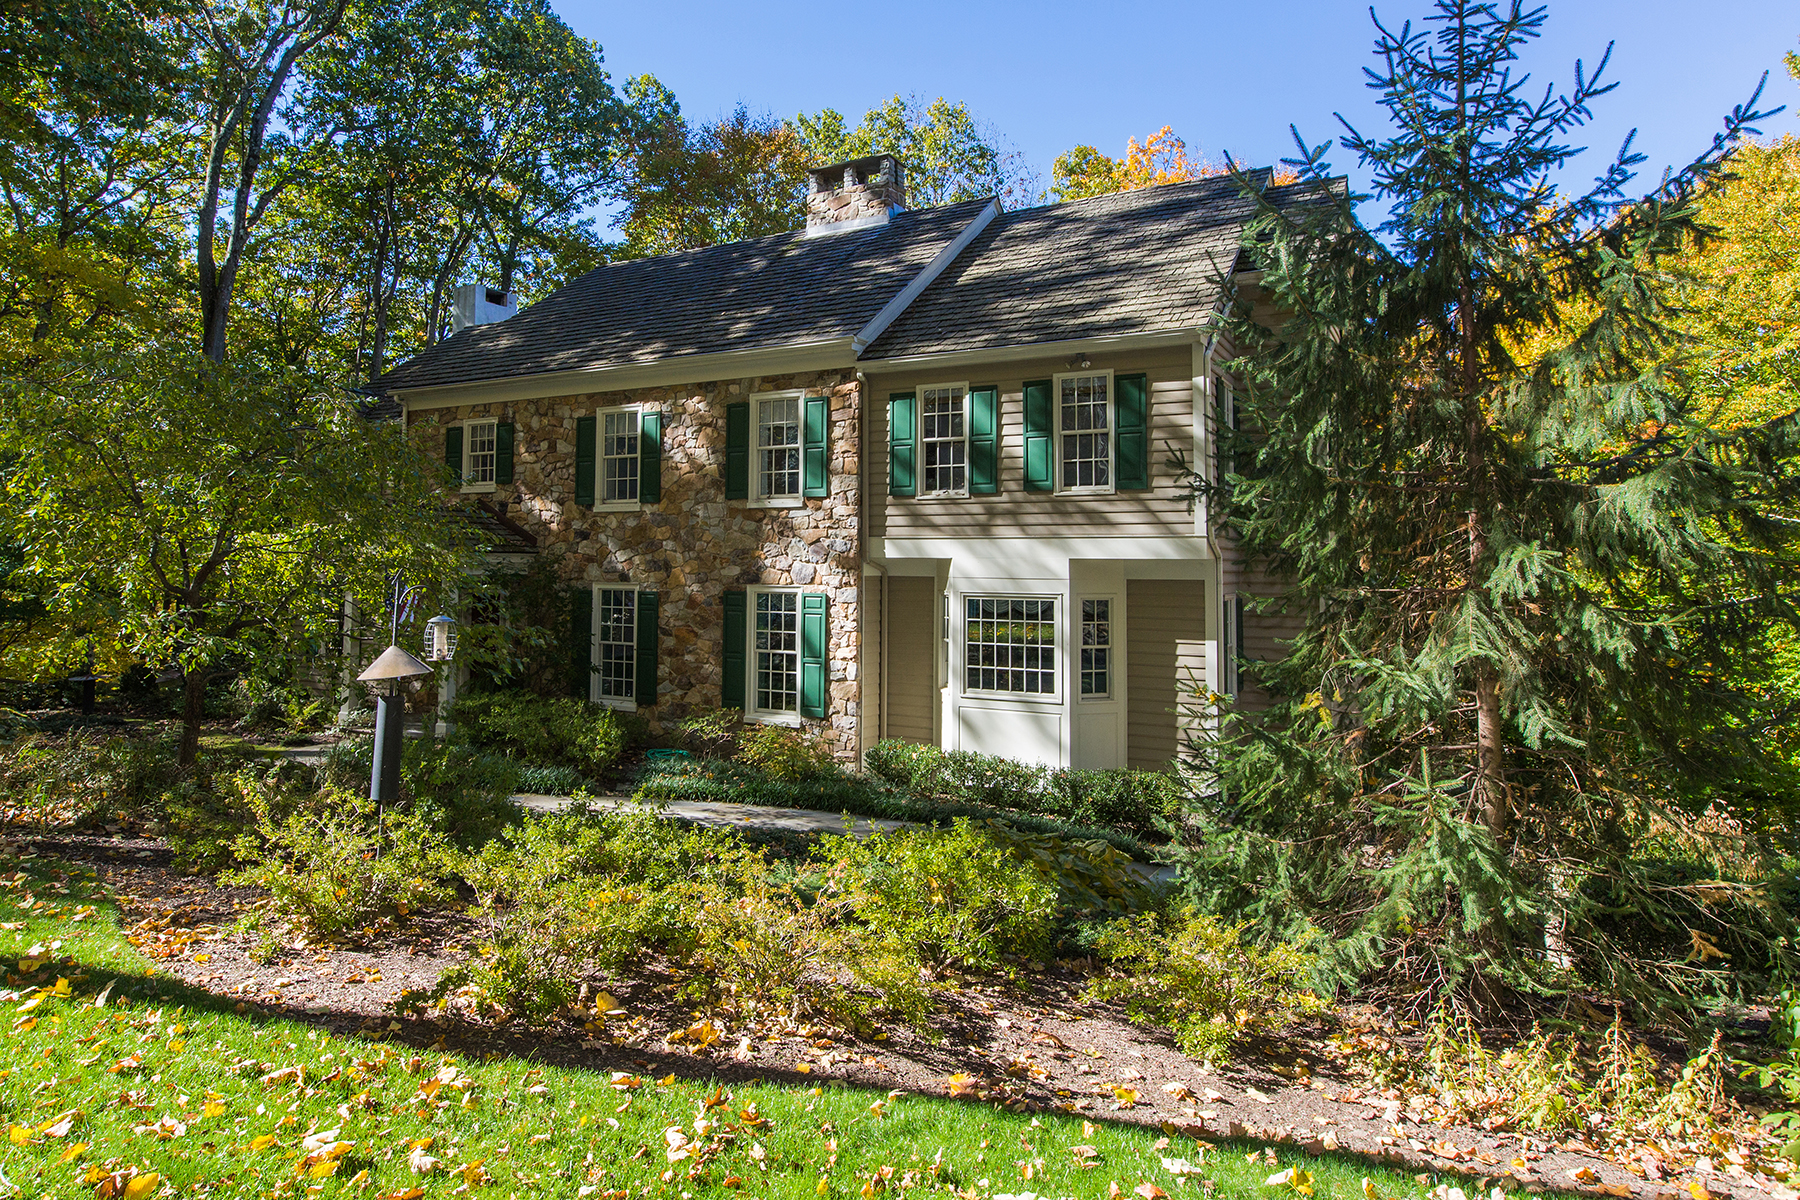 Single Family Home for Sale at Carversville, PA 6457 Old Carversville Rd Carversville, Pennsylvania, 18913 United States